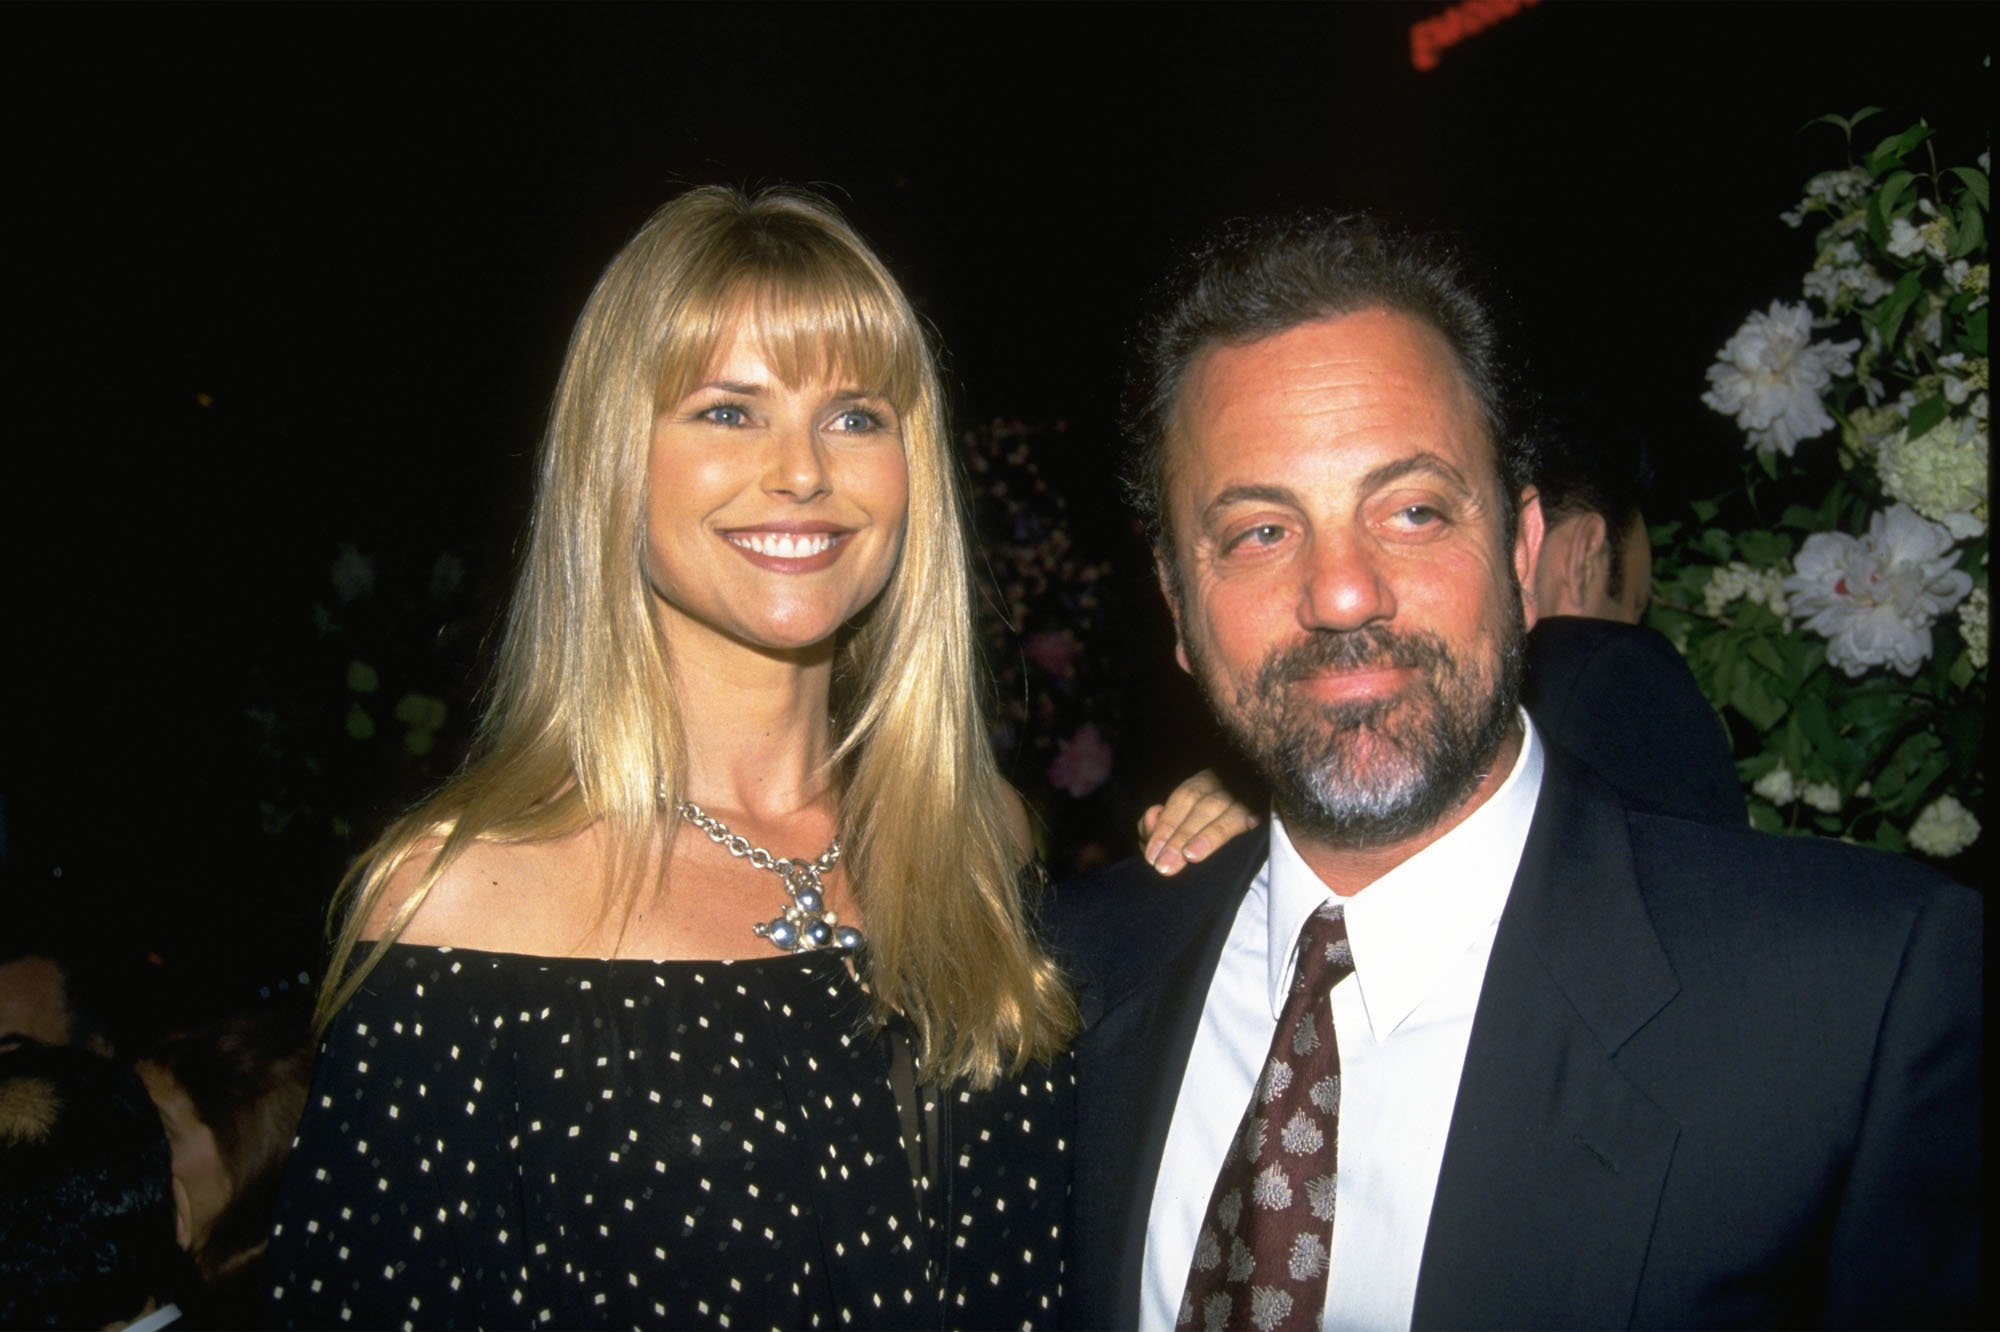 Christie Brinkley and Billy Joel. I Image: Getty Images.